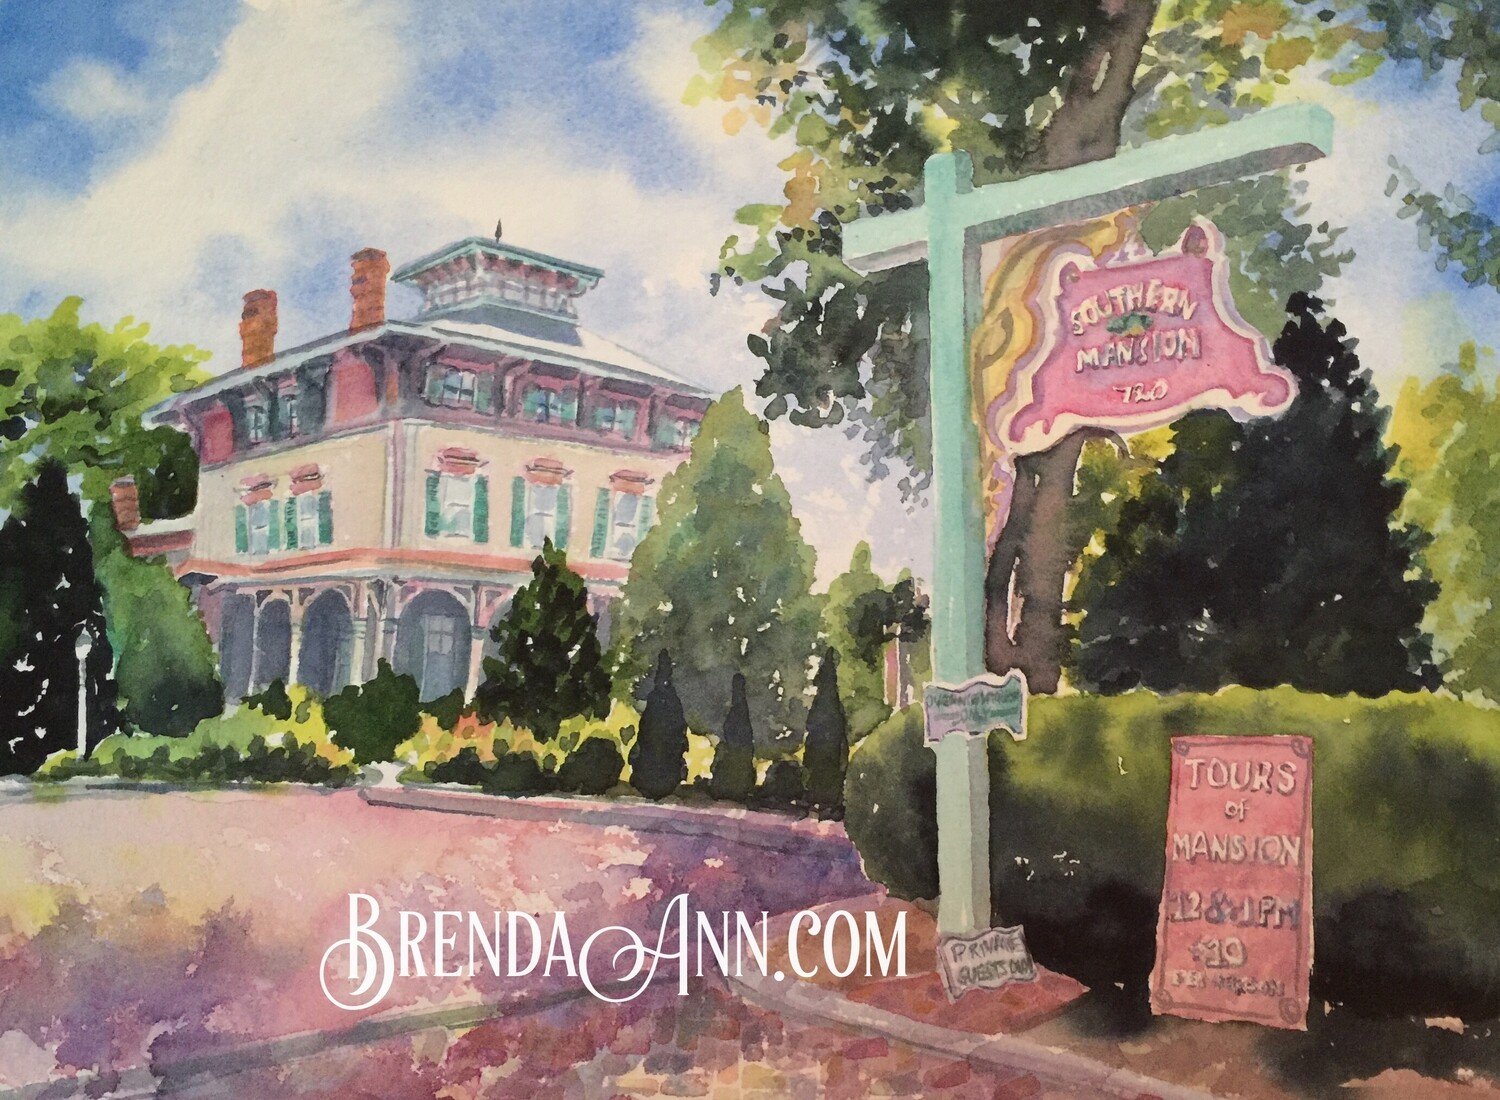 Southern Mansion in Cape May, NJ - Hand Signed Archival Watercolor Print